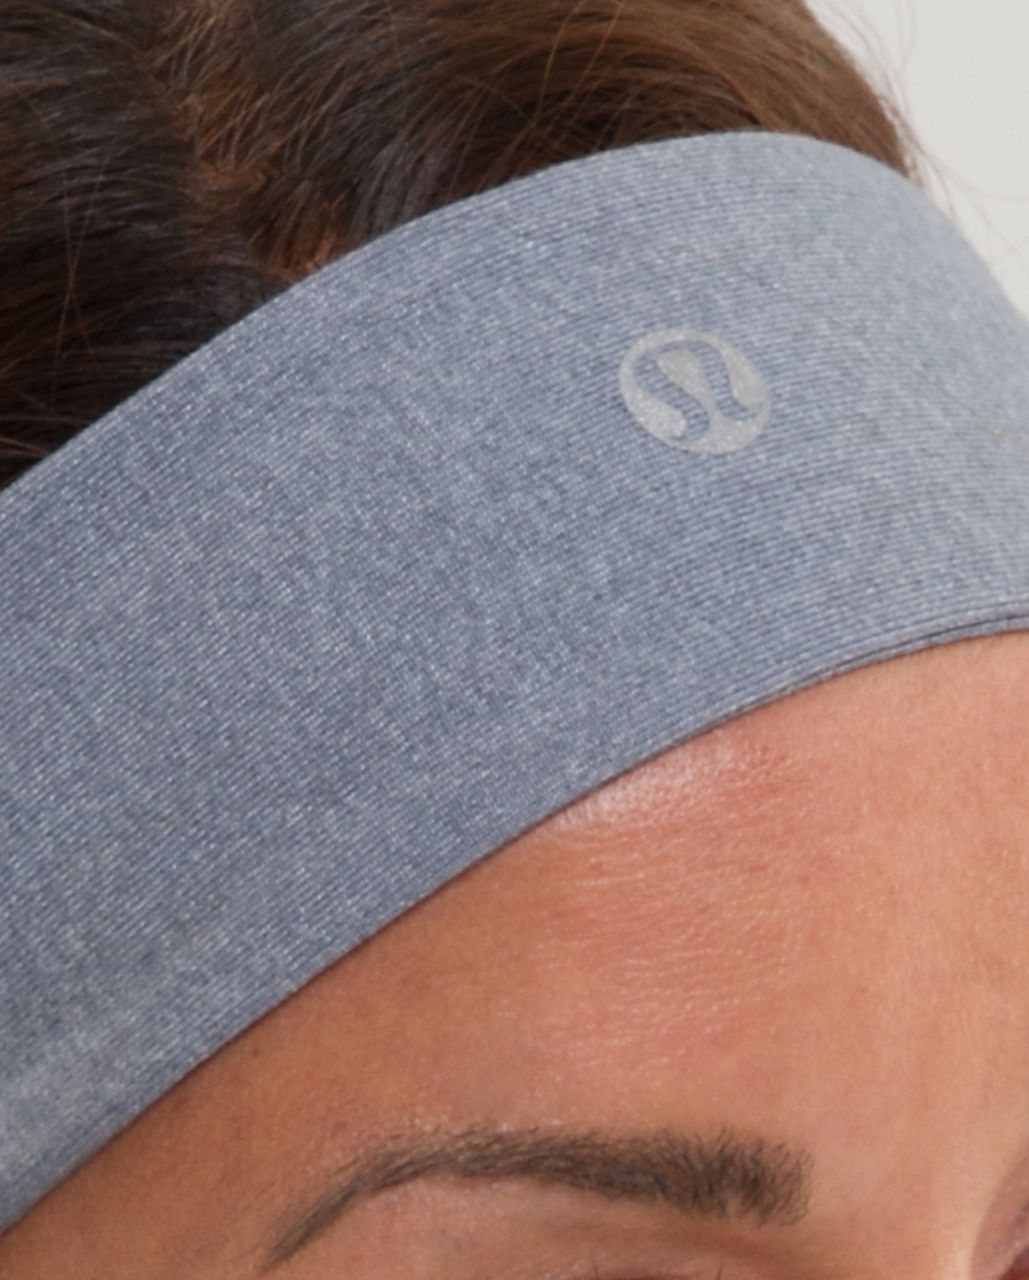 Lululemon Lucky Luon Headband - Heathered Blurred Grey